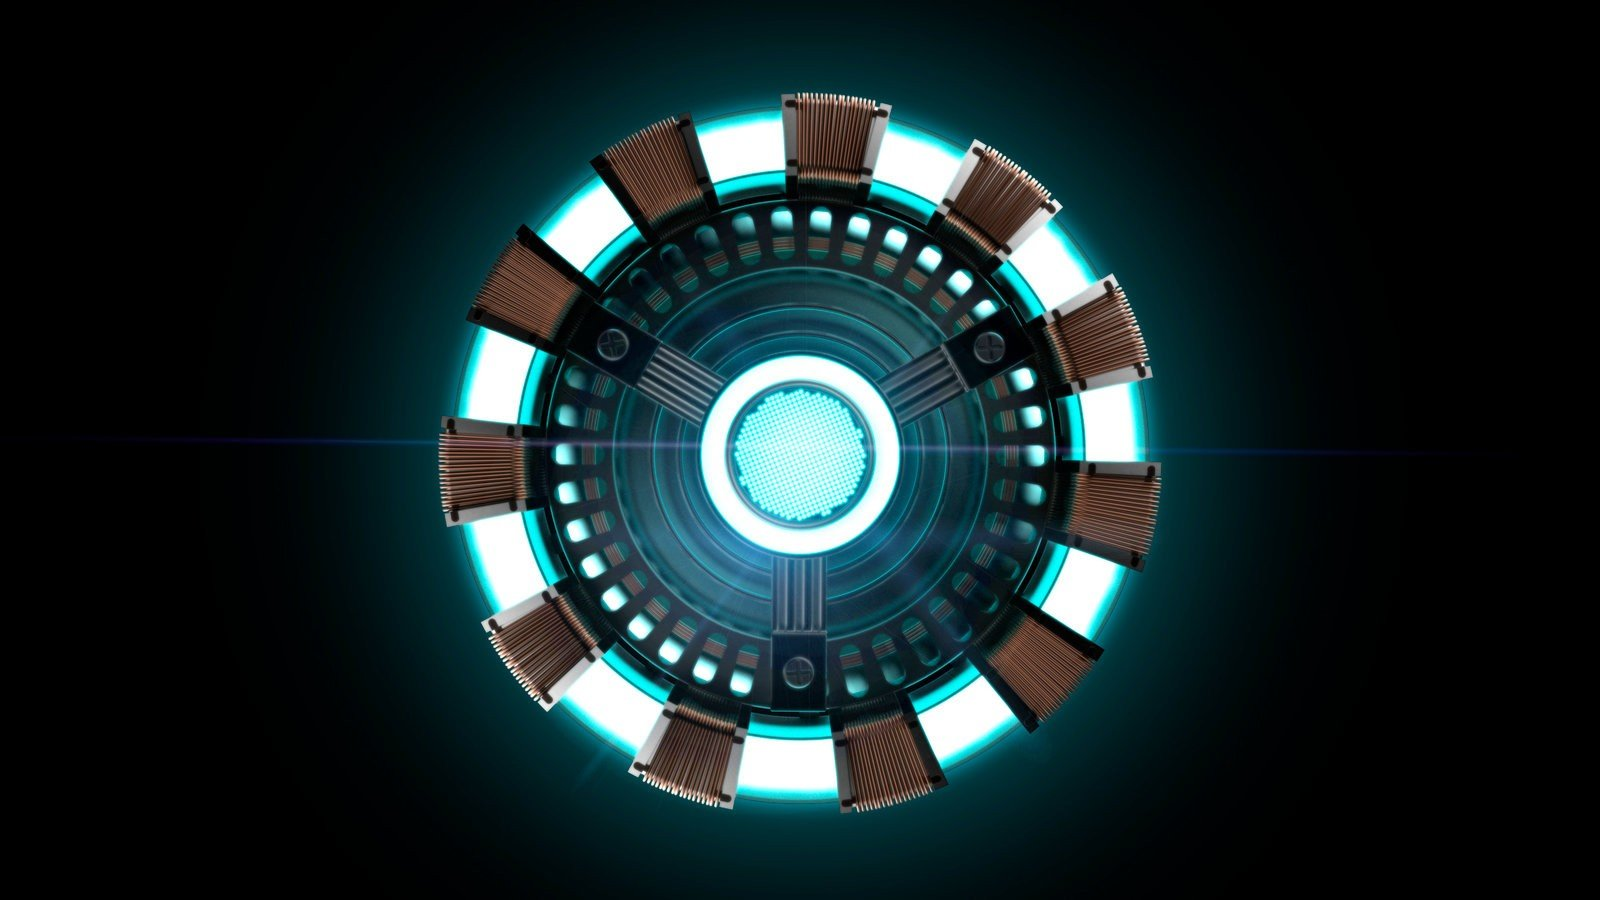 Iron Man, Arc Reactor, Minimalism HD Wallpapers / Desktop ... Iron Man 3 Arc Reactor Logo